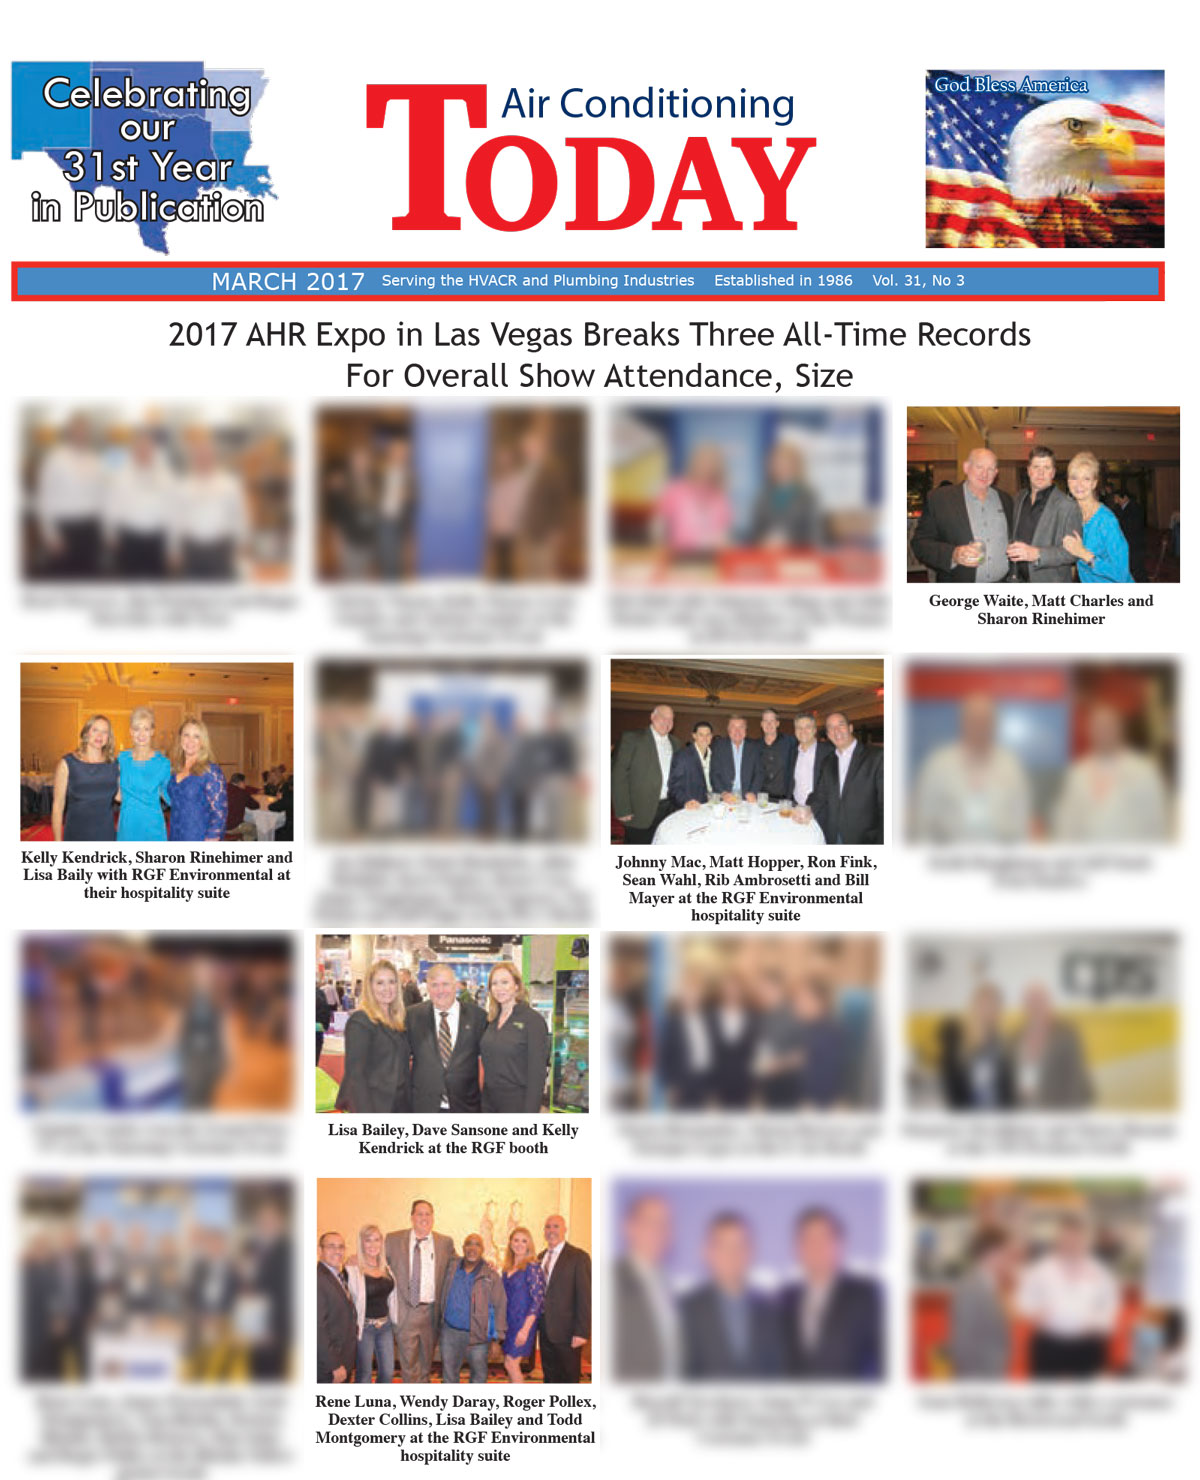 Air Conditioning Today, March 2017 - AHR Expo